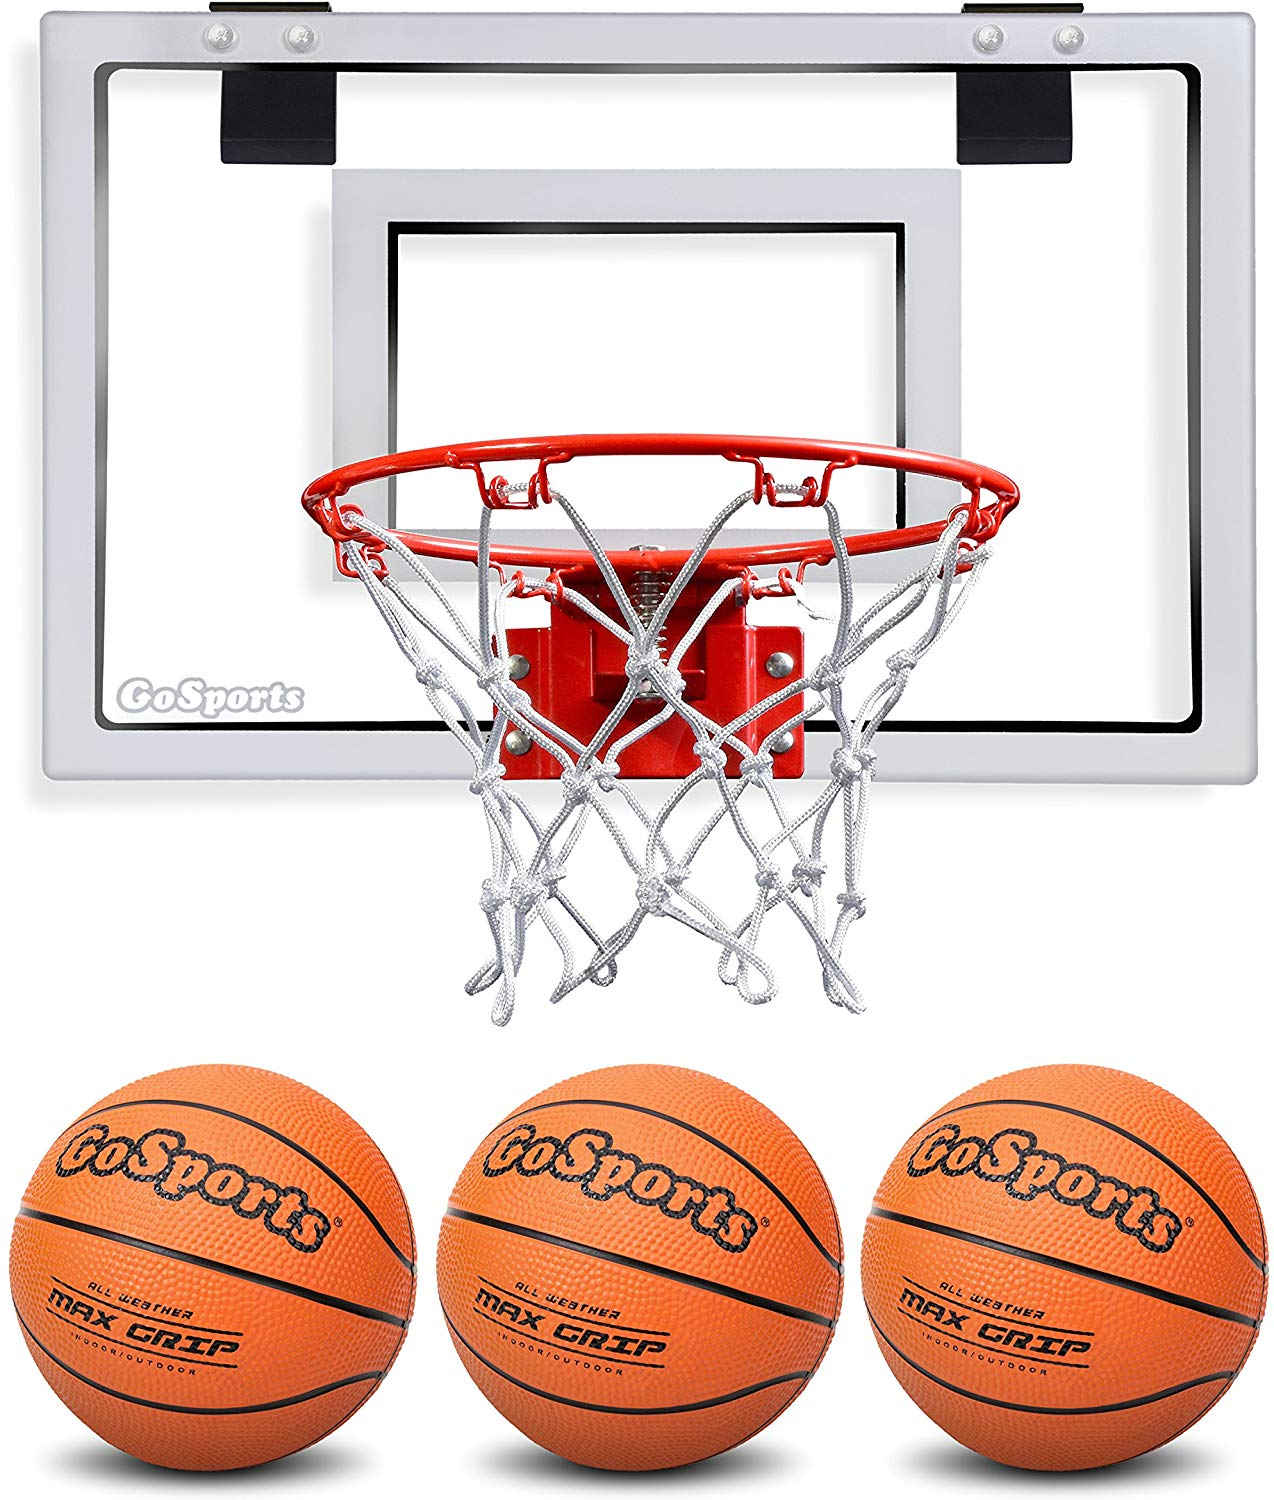 Top 10 Best Mini Basketball Hoops in 2020 Reviews